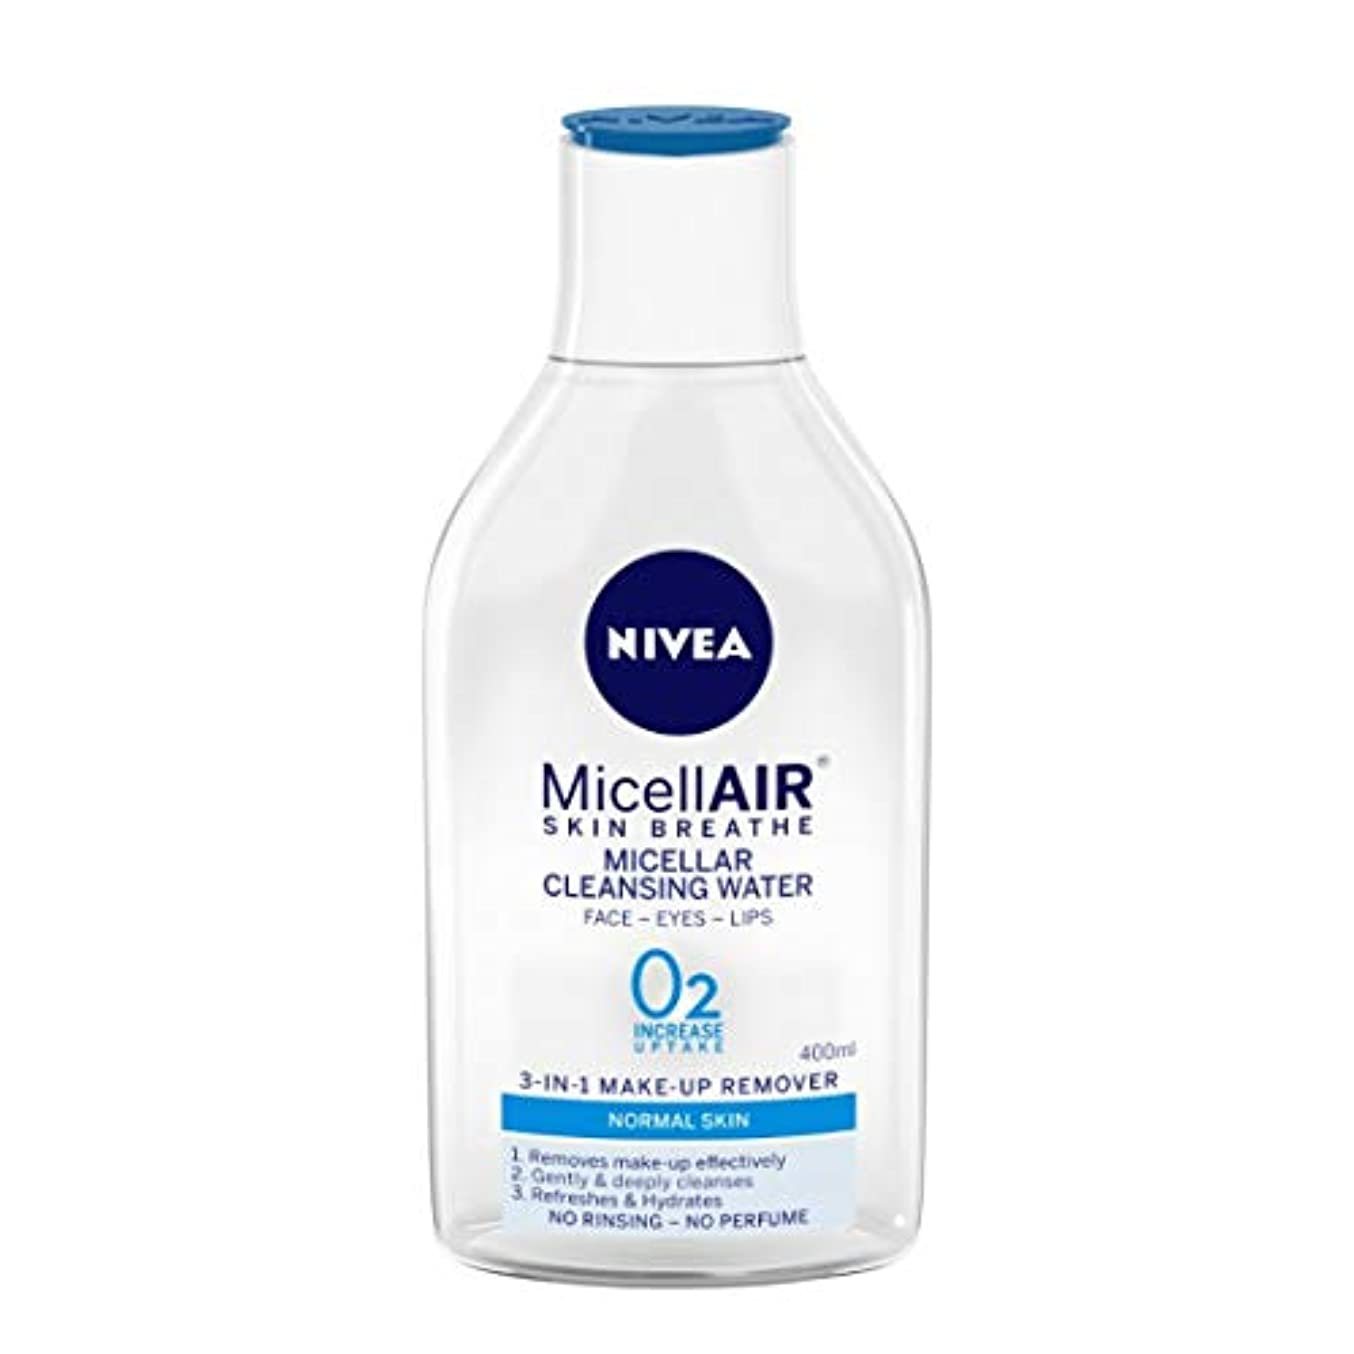 NIVEA Micellar Cleansing Water, MicellAIR Skin Breathe Make Up Remover, 400ml